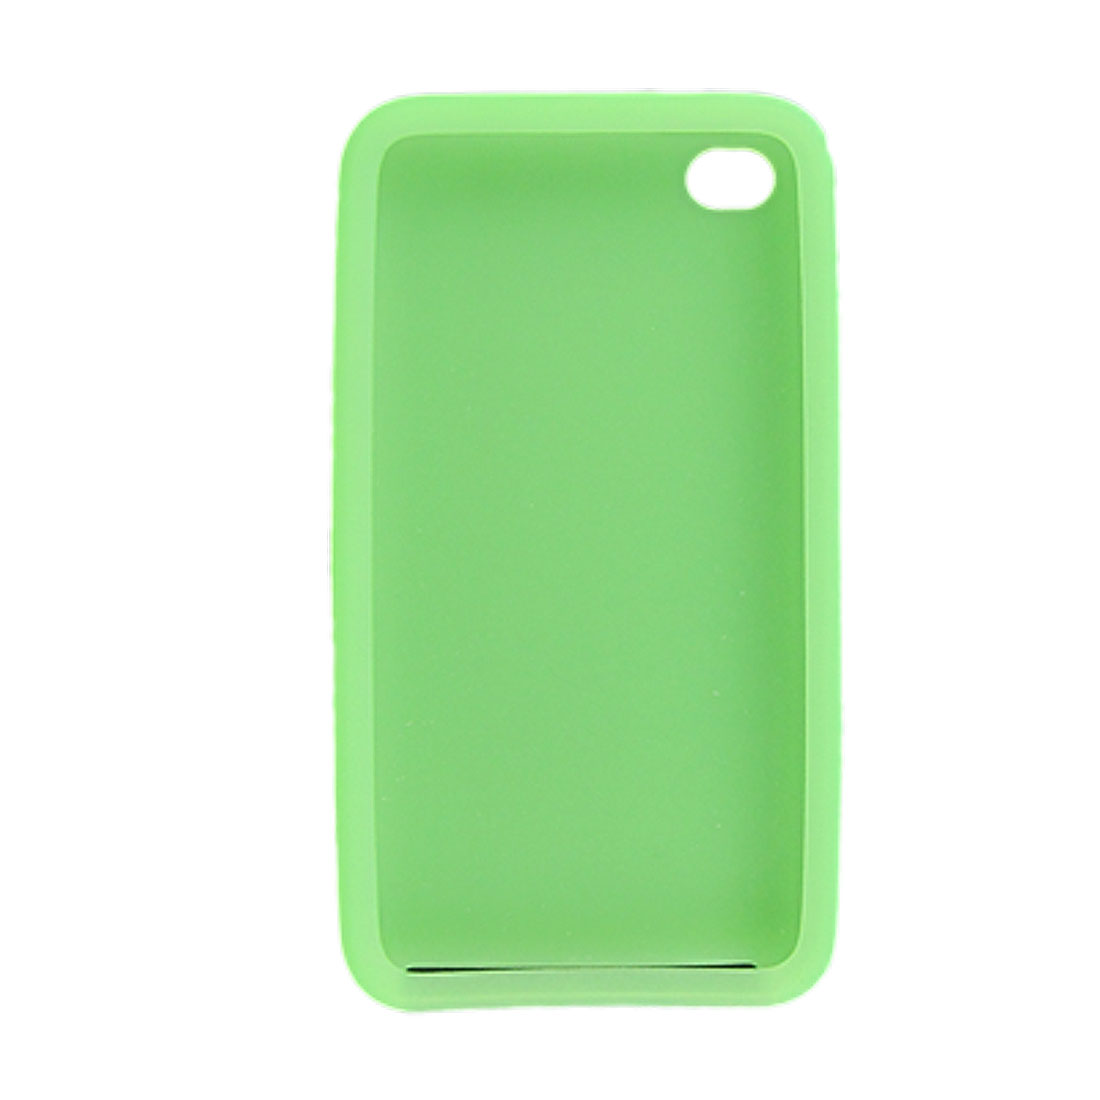 Protective Skin Green Case Soft Cover for iPod Touch 4G